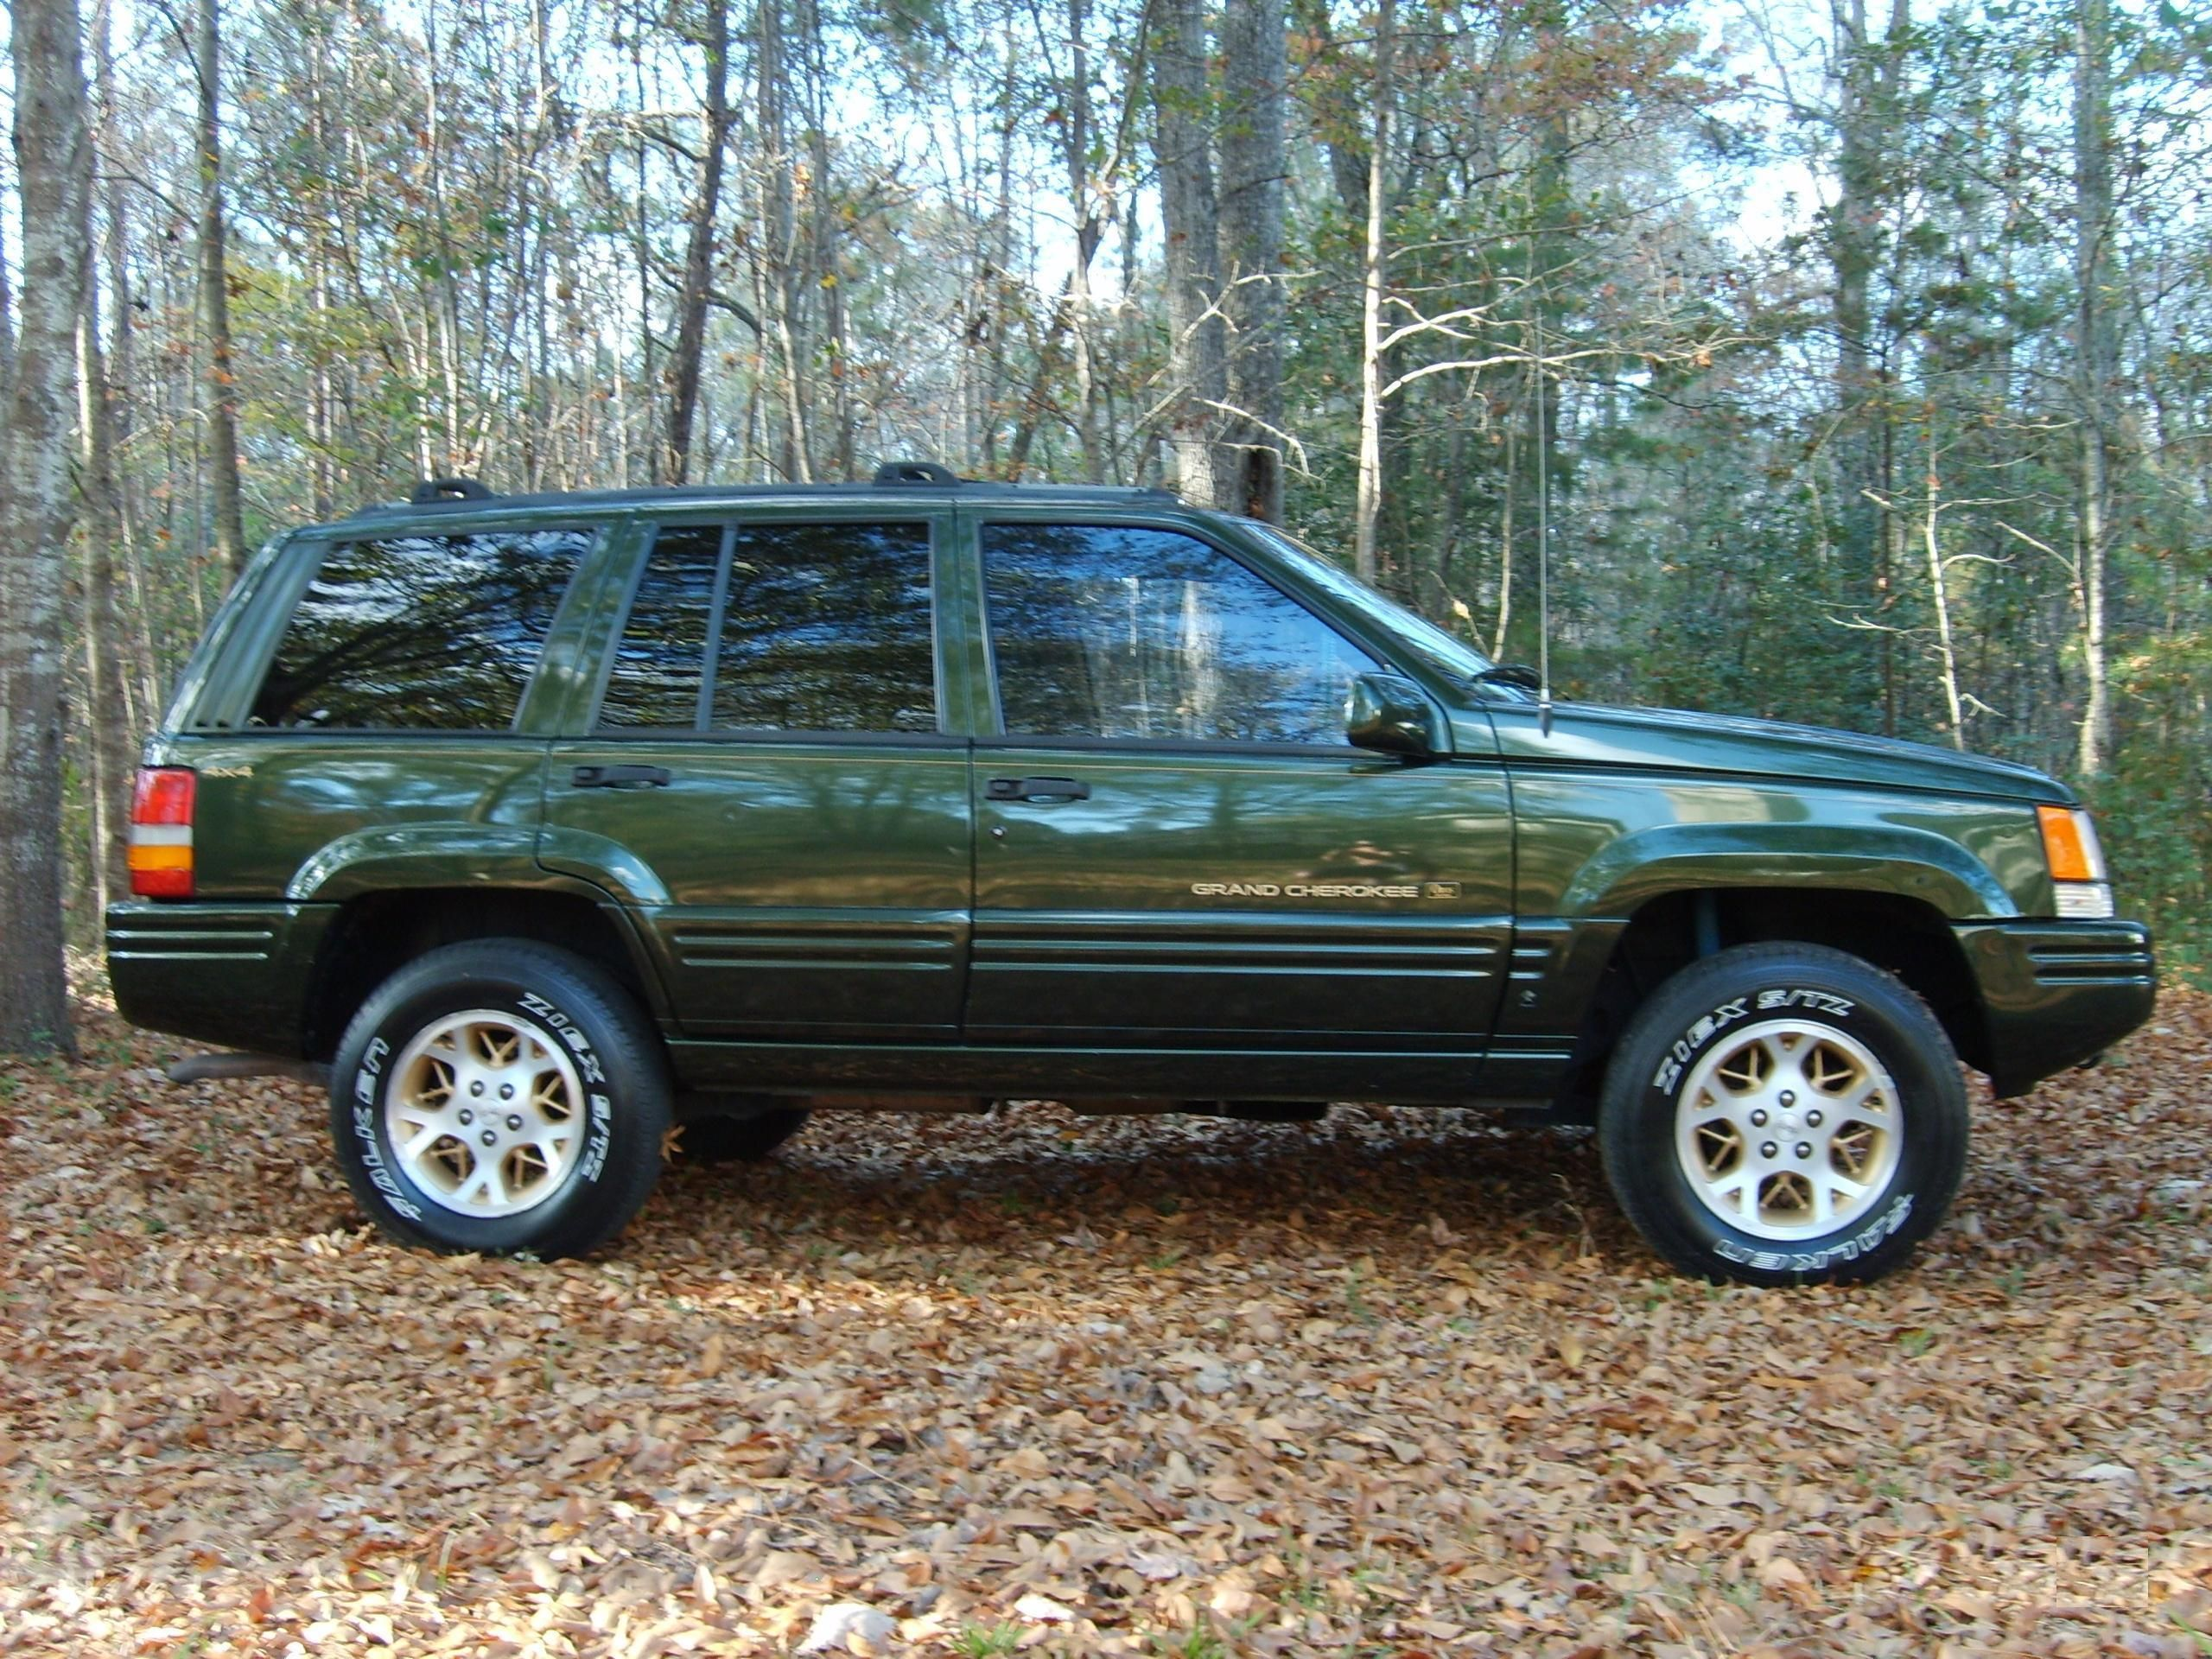 95 jeep cherokee for sale jpeg http carimagescolay casa 95